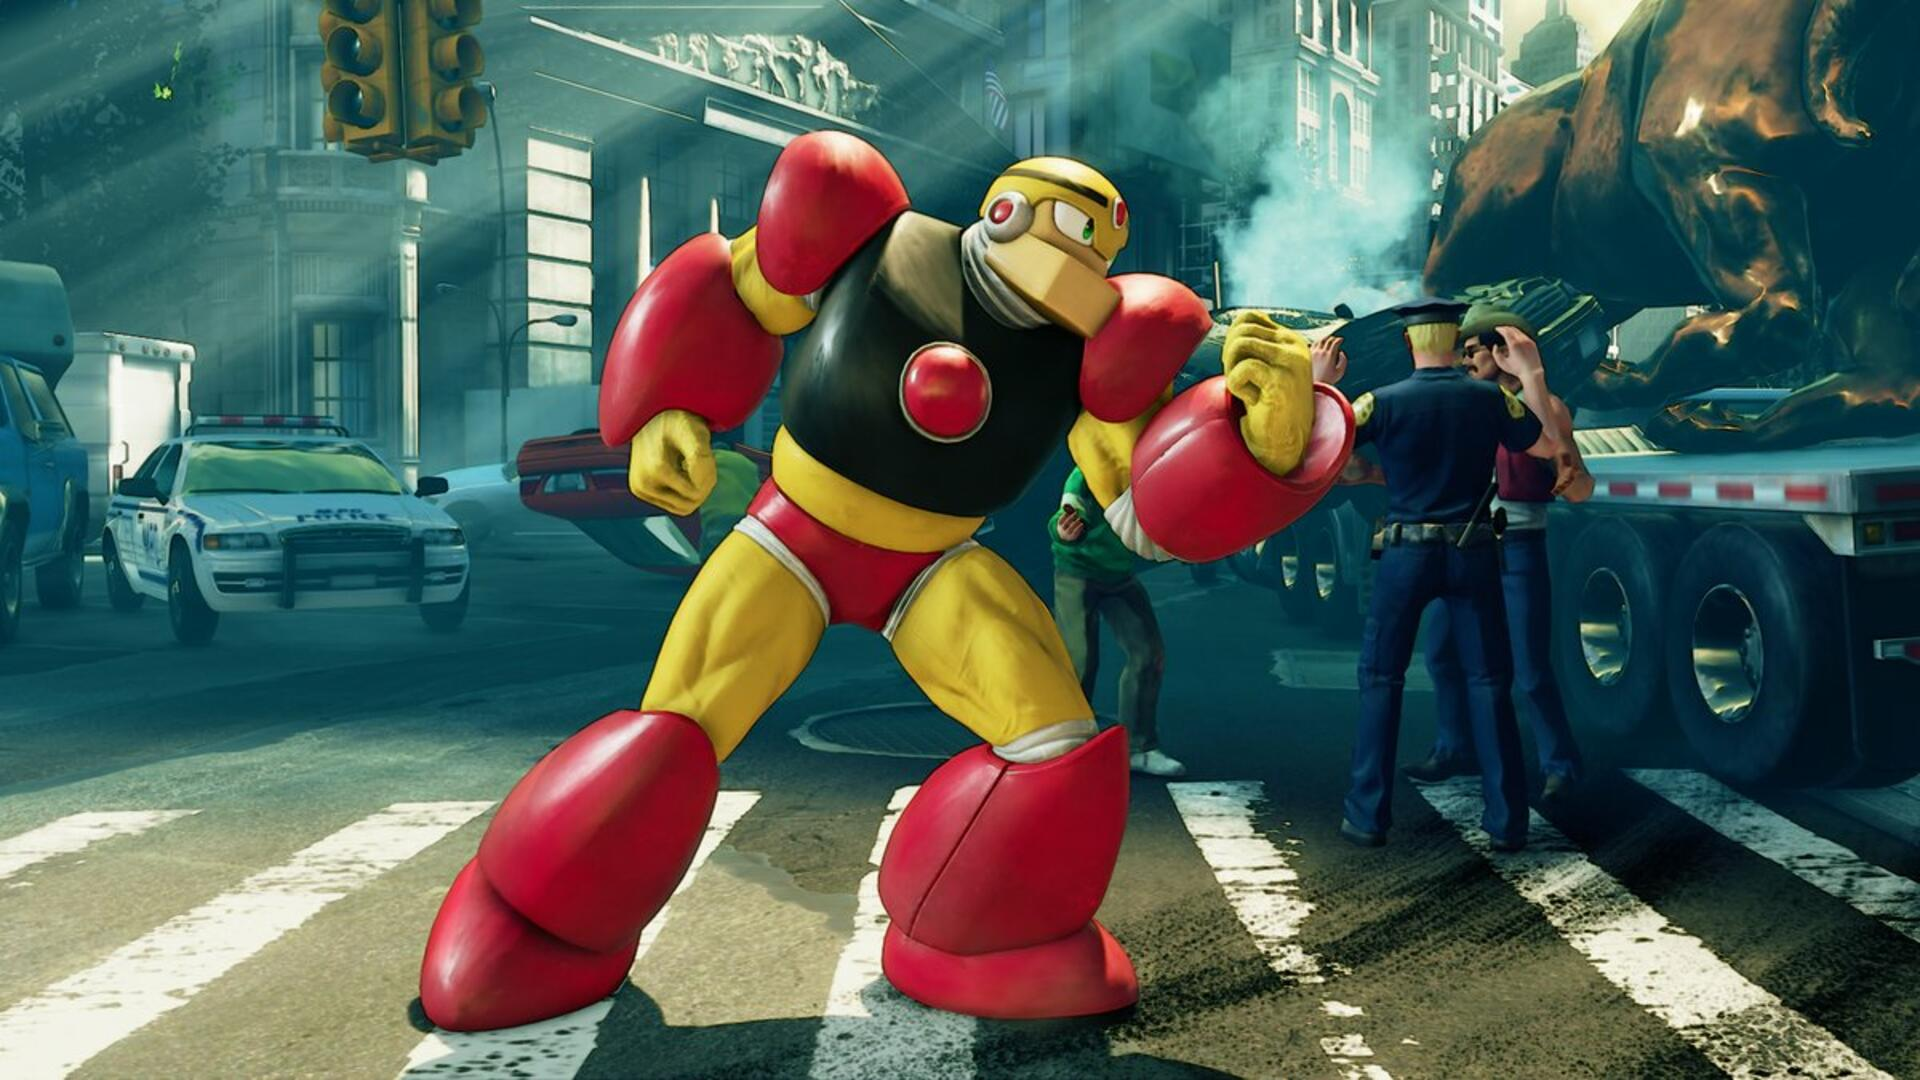 Guts Man Is Coming to Street Fighter 5, and He's Bringing His Whole